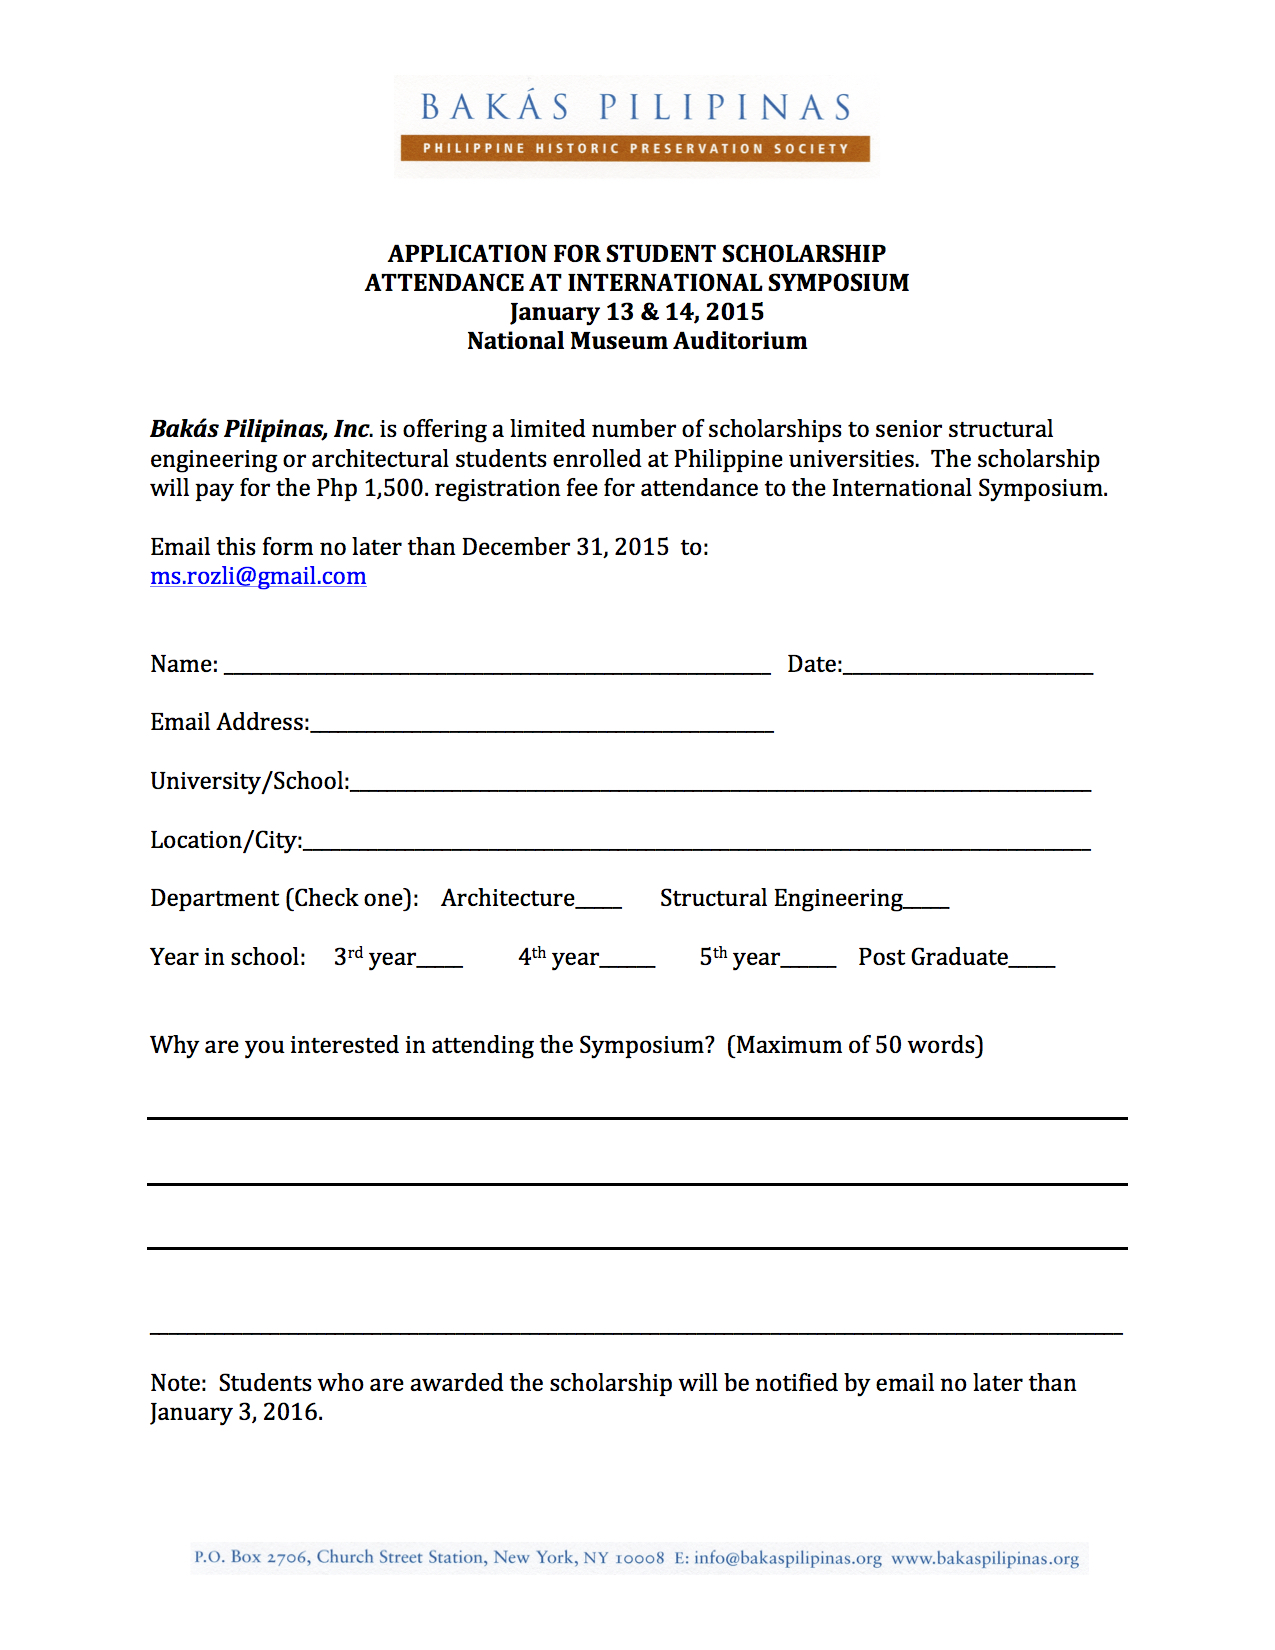 Application for Student Scholarship